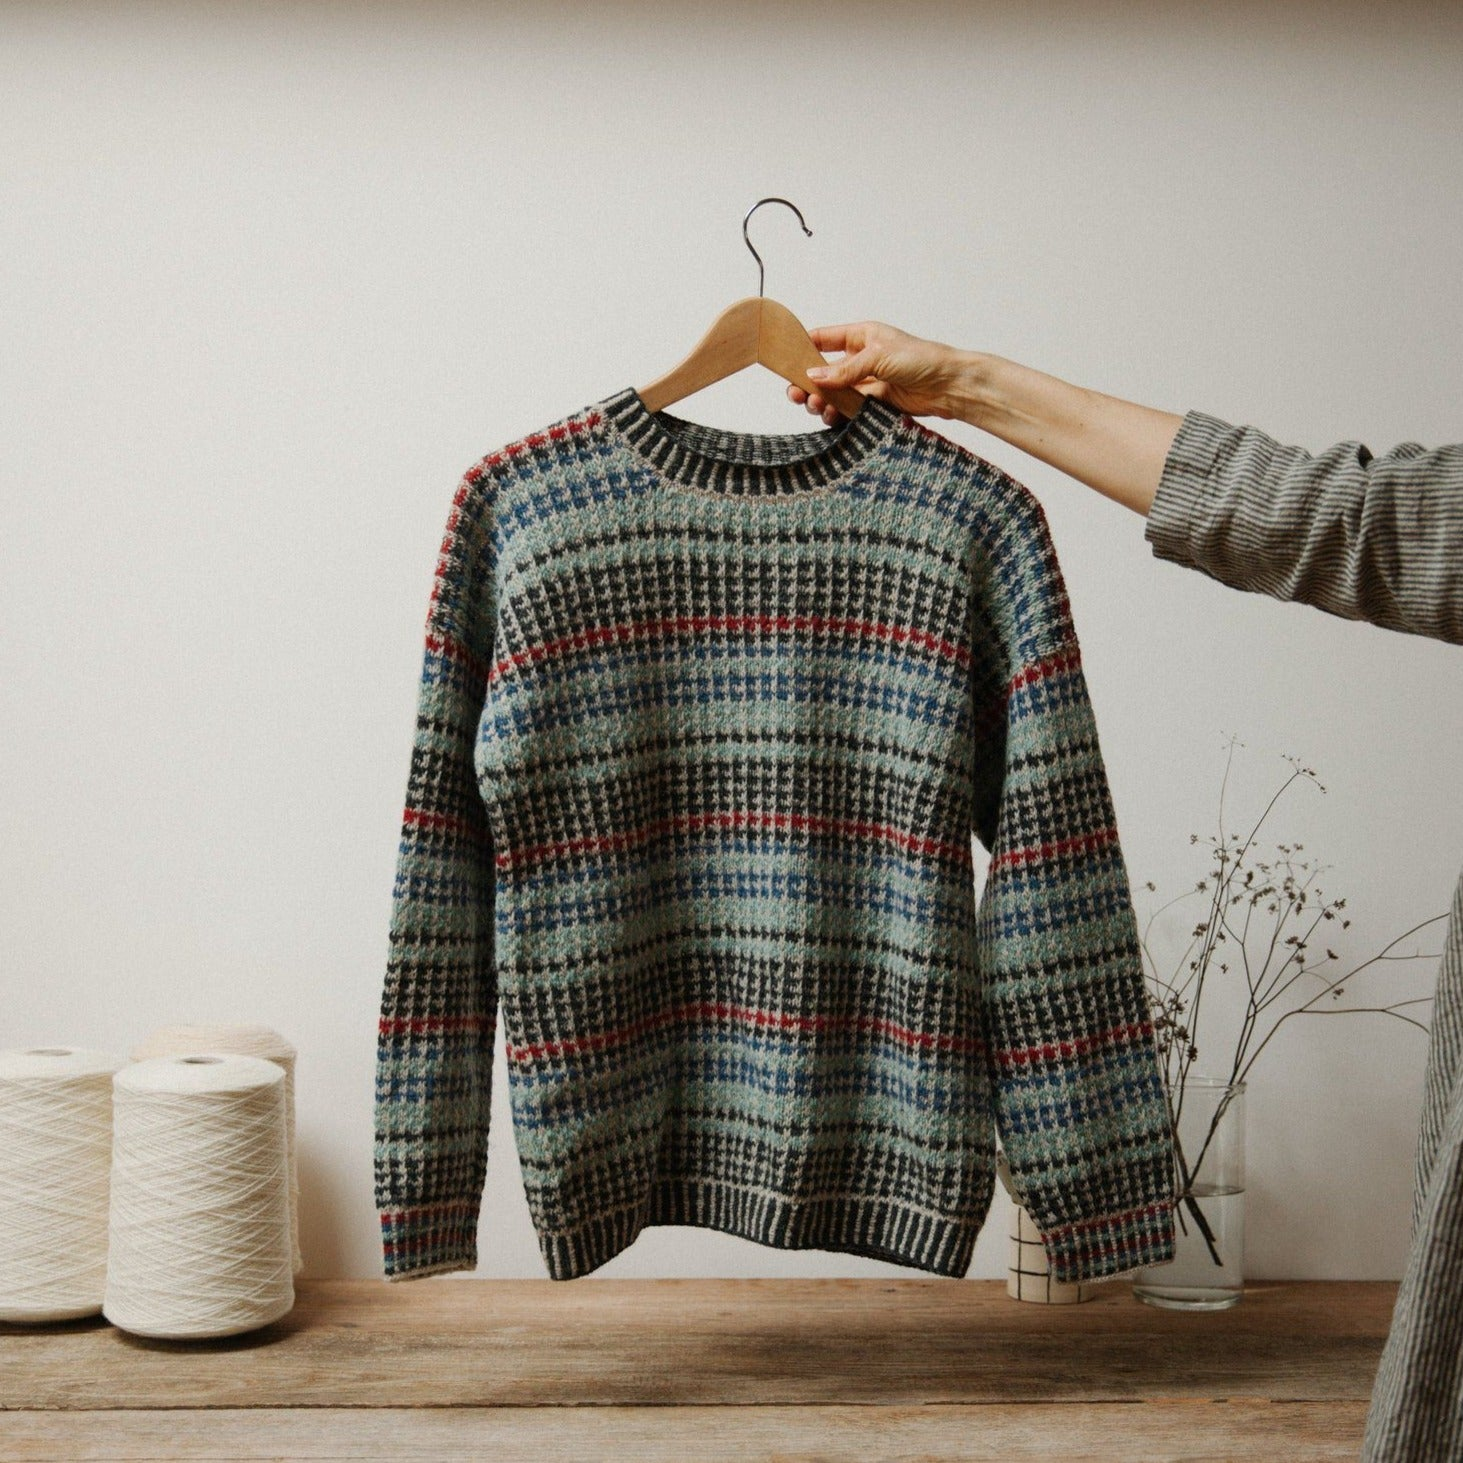 Biches & Bûches No. 4 Sweater Pattern -  - Knitting Pattern